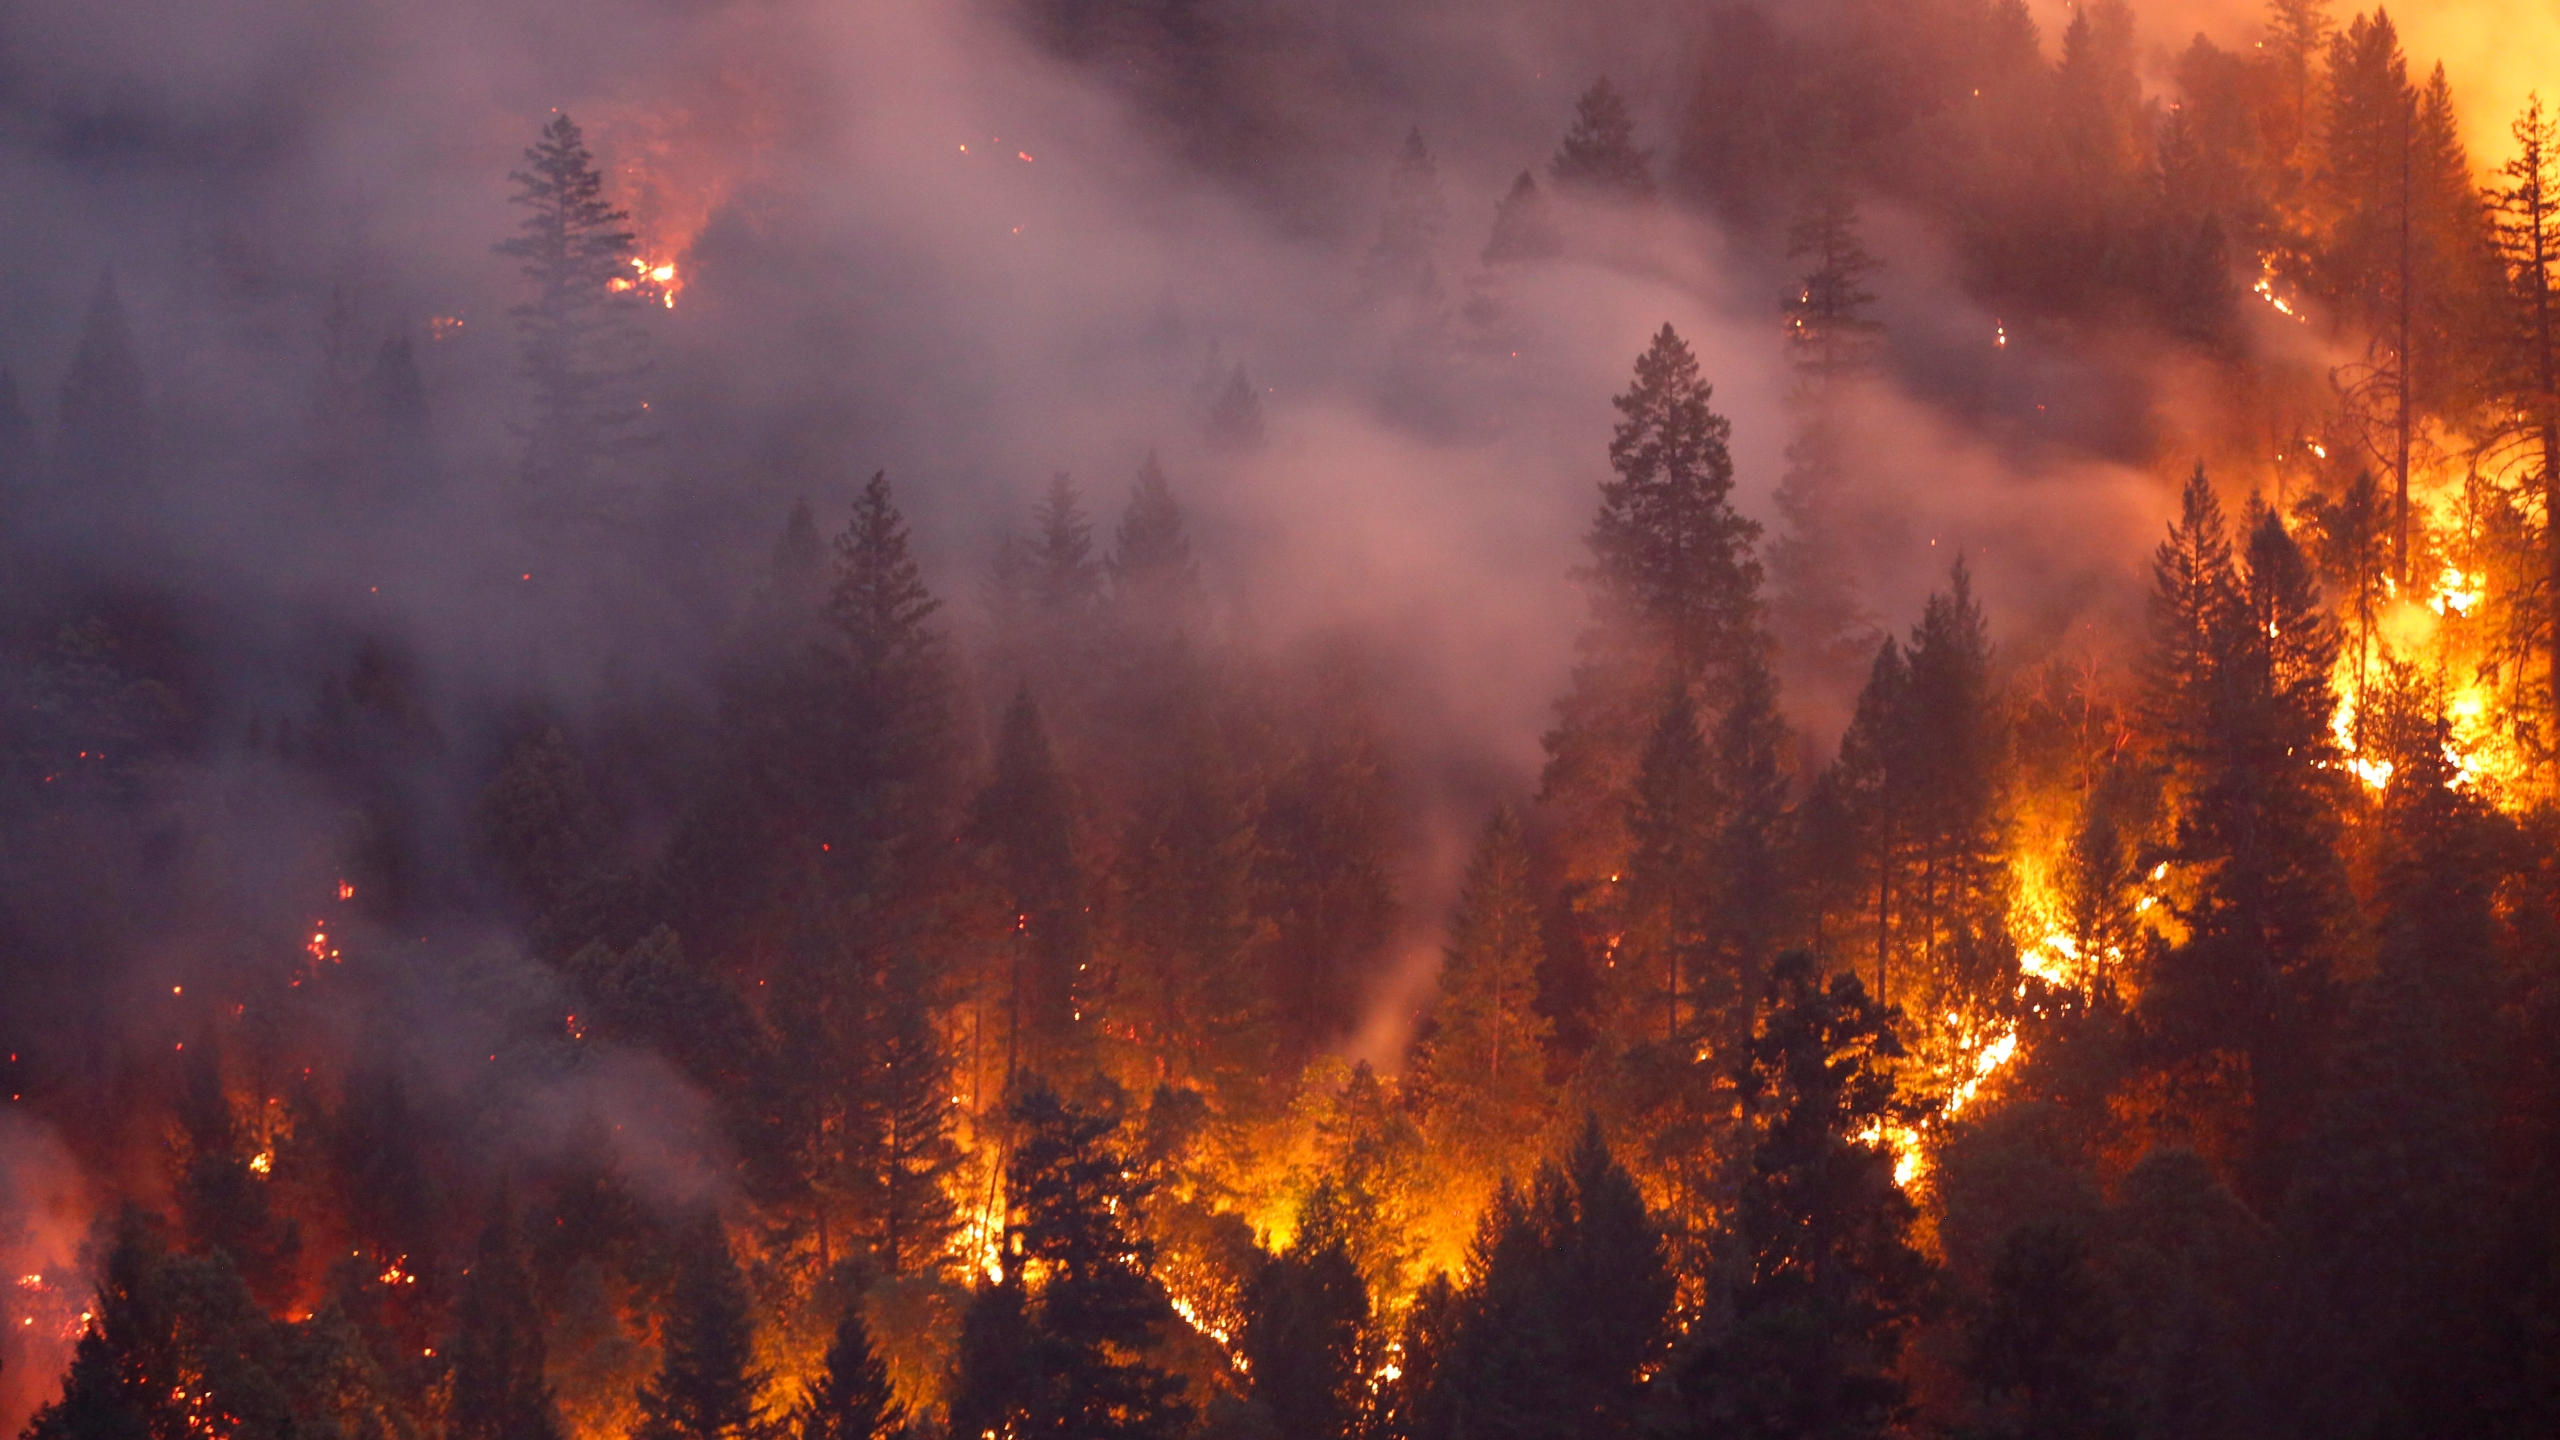 Forest burns in the Carr Fire on July 30, 2018 west of Redding. (Terray Sylvester/Getty Images)